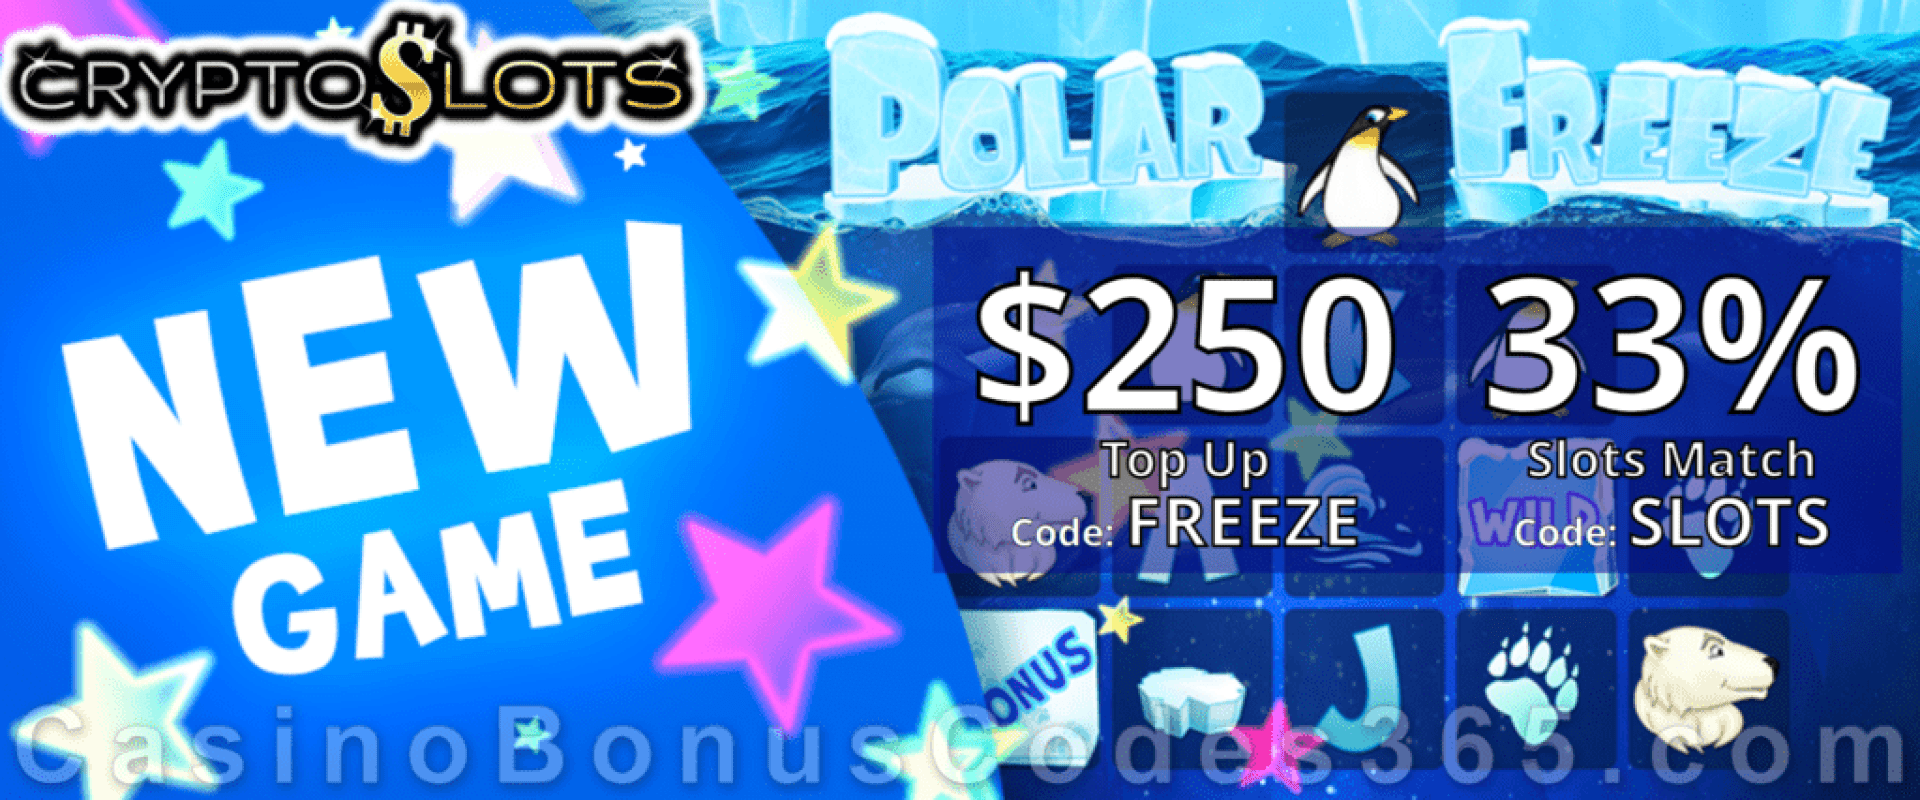 CryptoSlots Polar Freeze New Slot Special Offer